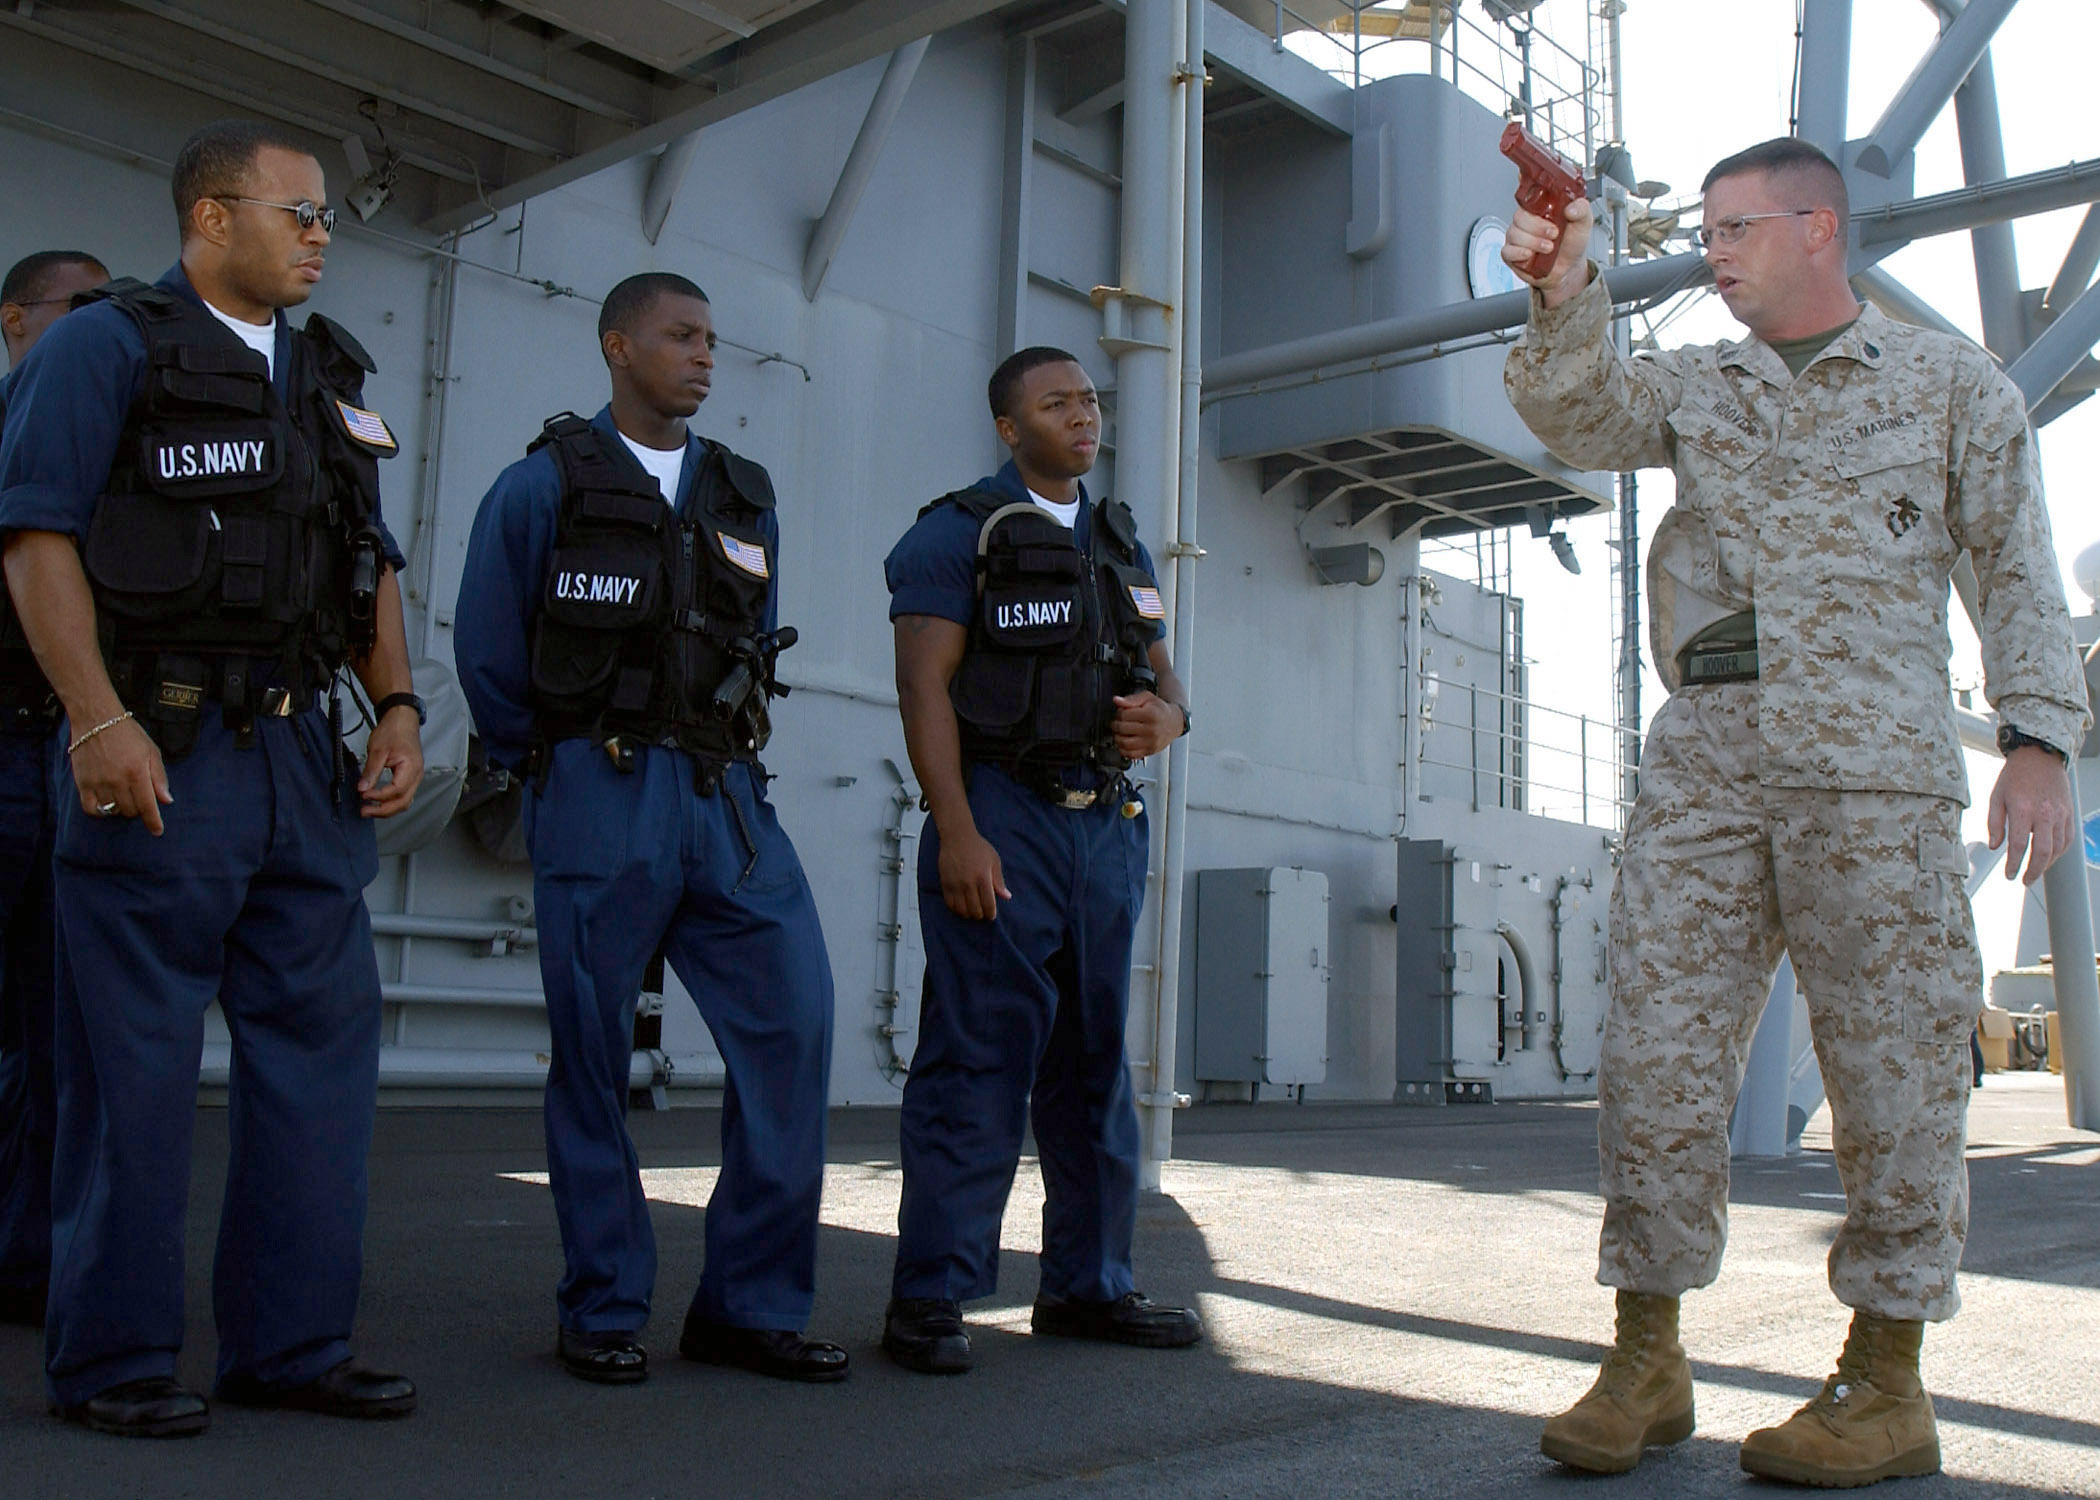 File:US Navy 030403-N-0466M-001 U.S. Marine SSgt Gregory Hoover ...